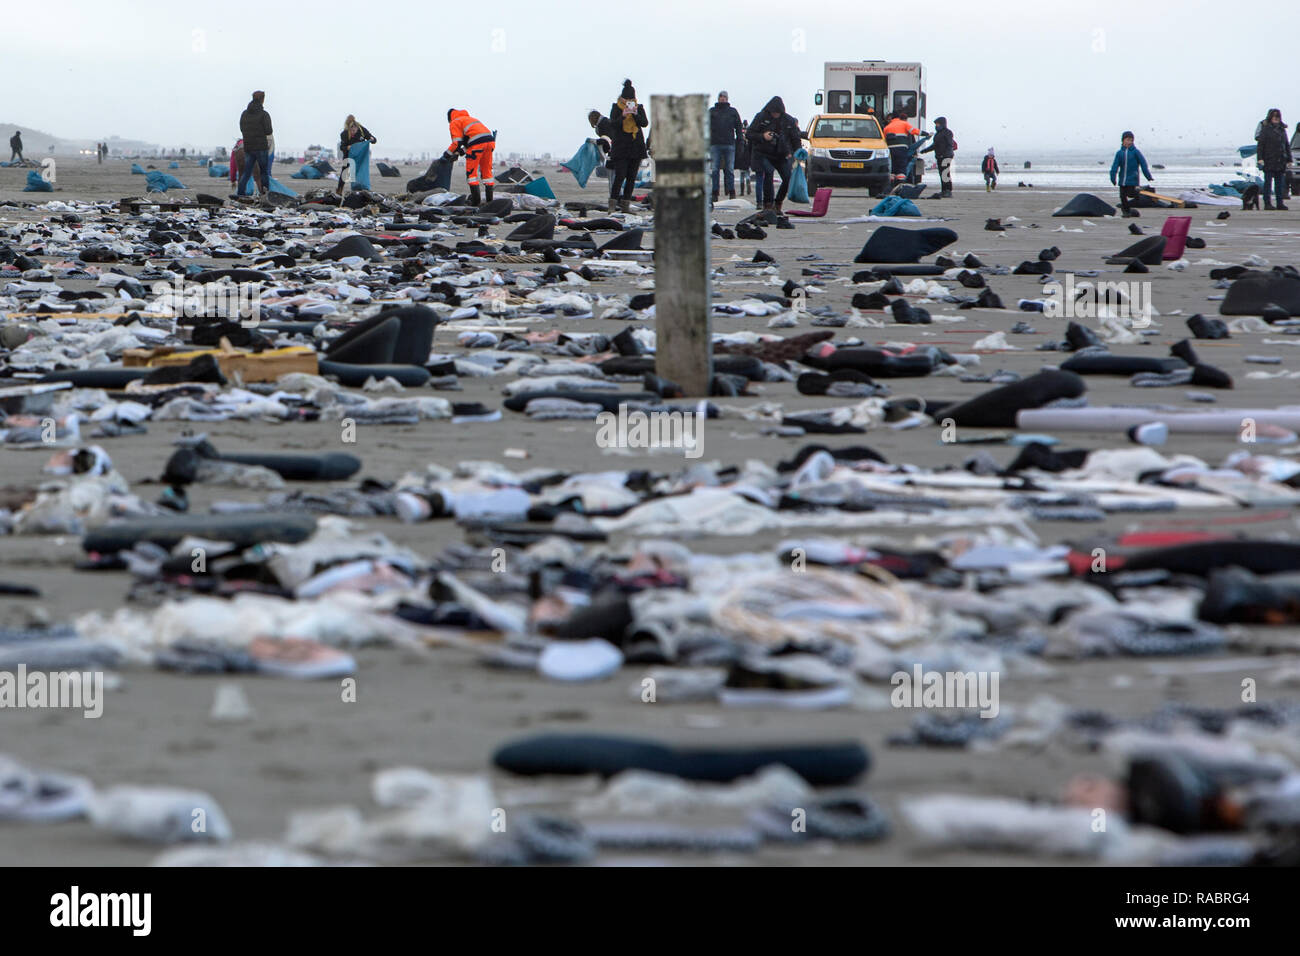 Ameland, Netherlands. 02nd Jan, 2019. Volunteers collect goods washed up on the beach at Midsland aan Zee on the Dutch island of Ameland, which come from MSC Zoe containers that have gone overboard. Approximately 300 pieces had gone overboard in the night to 03.01.2019, the freight should also contain dangerous goods. Credit: Jan Spoelstra/dpa/Alamy Live News - Stock Image